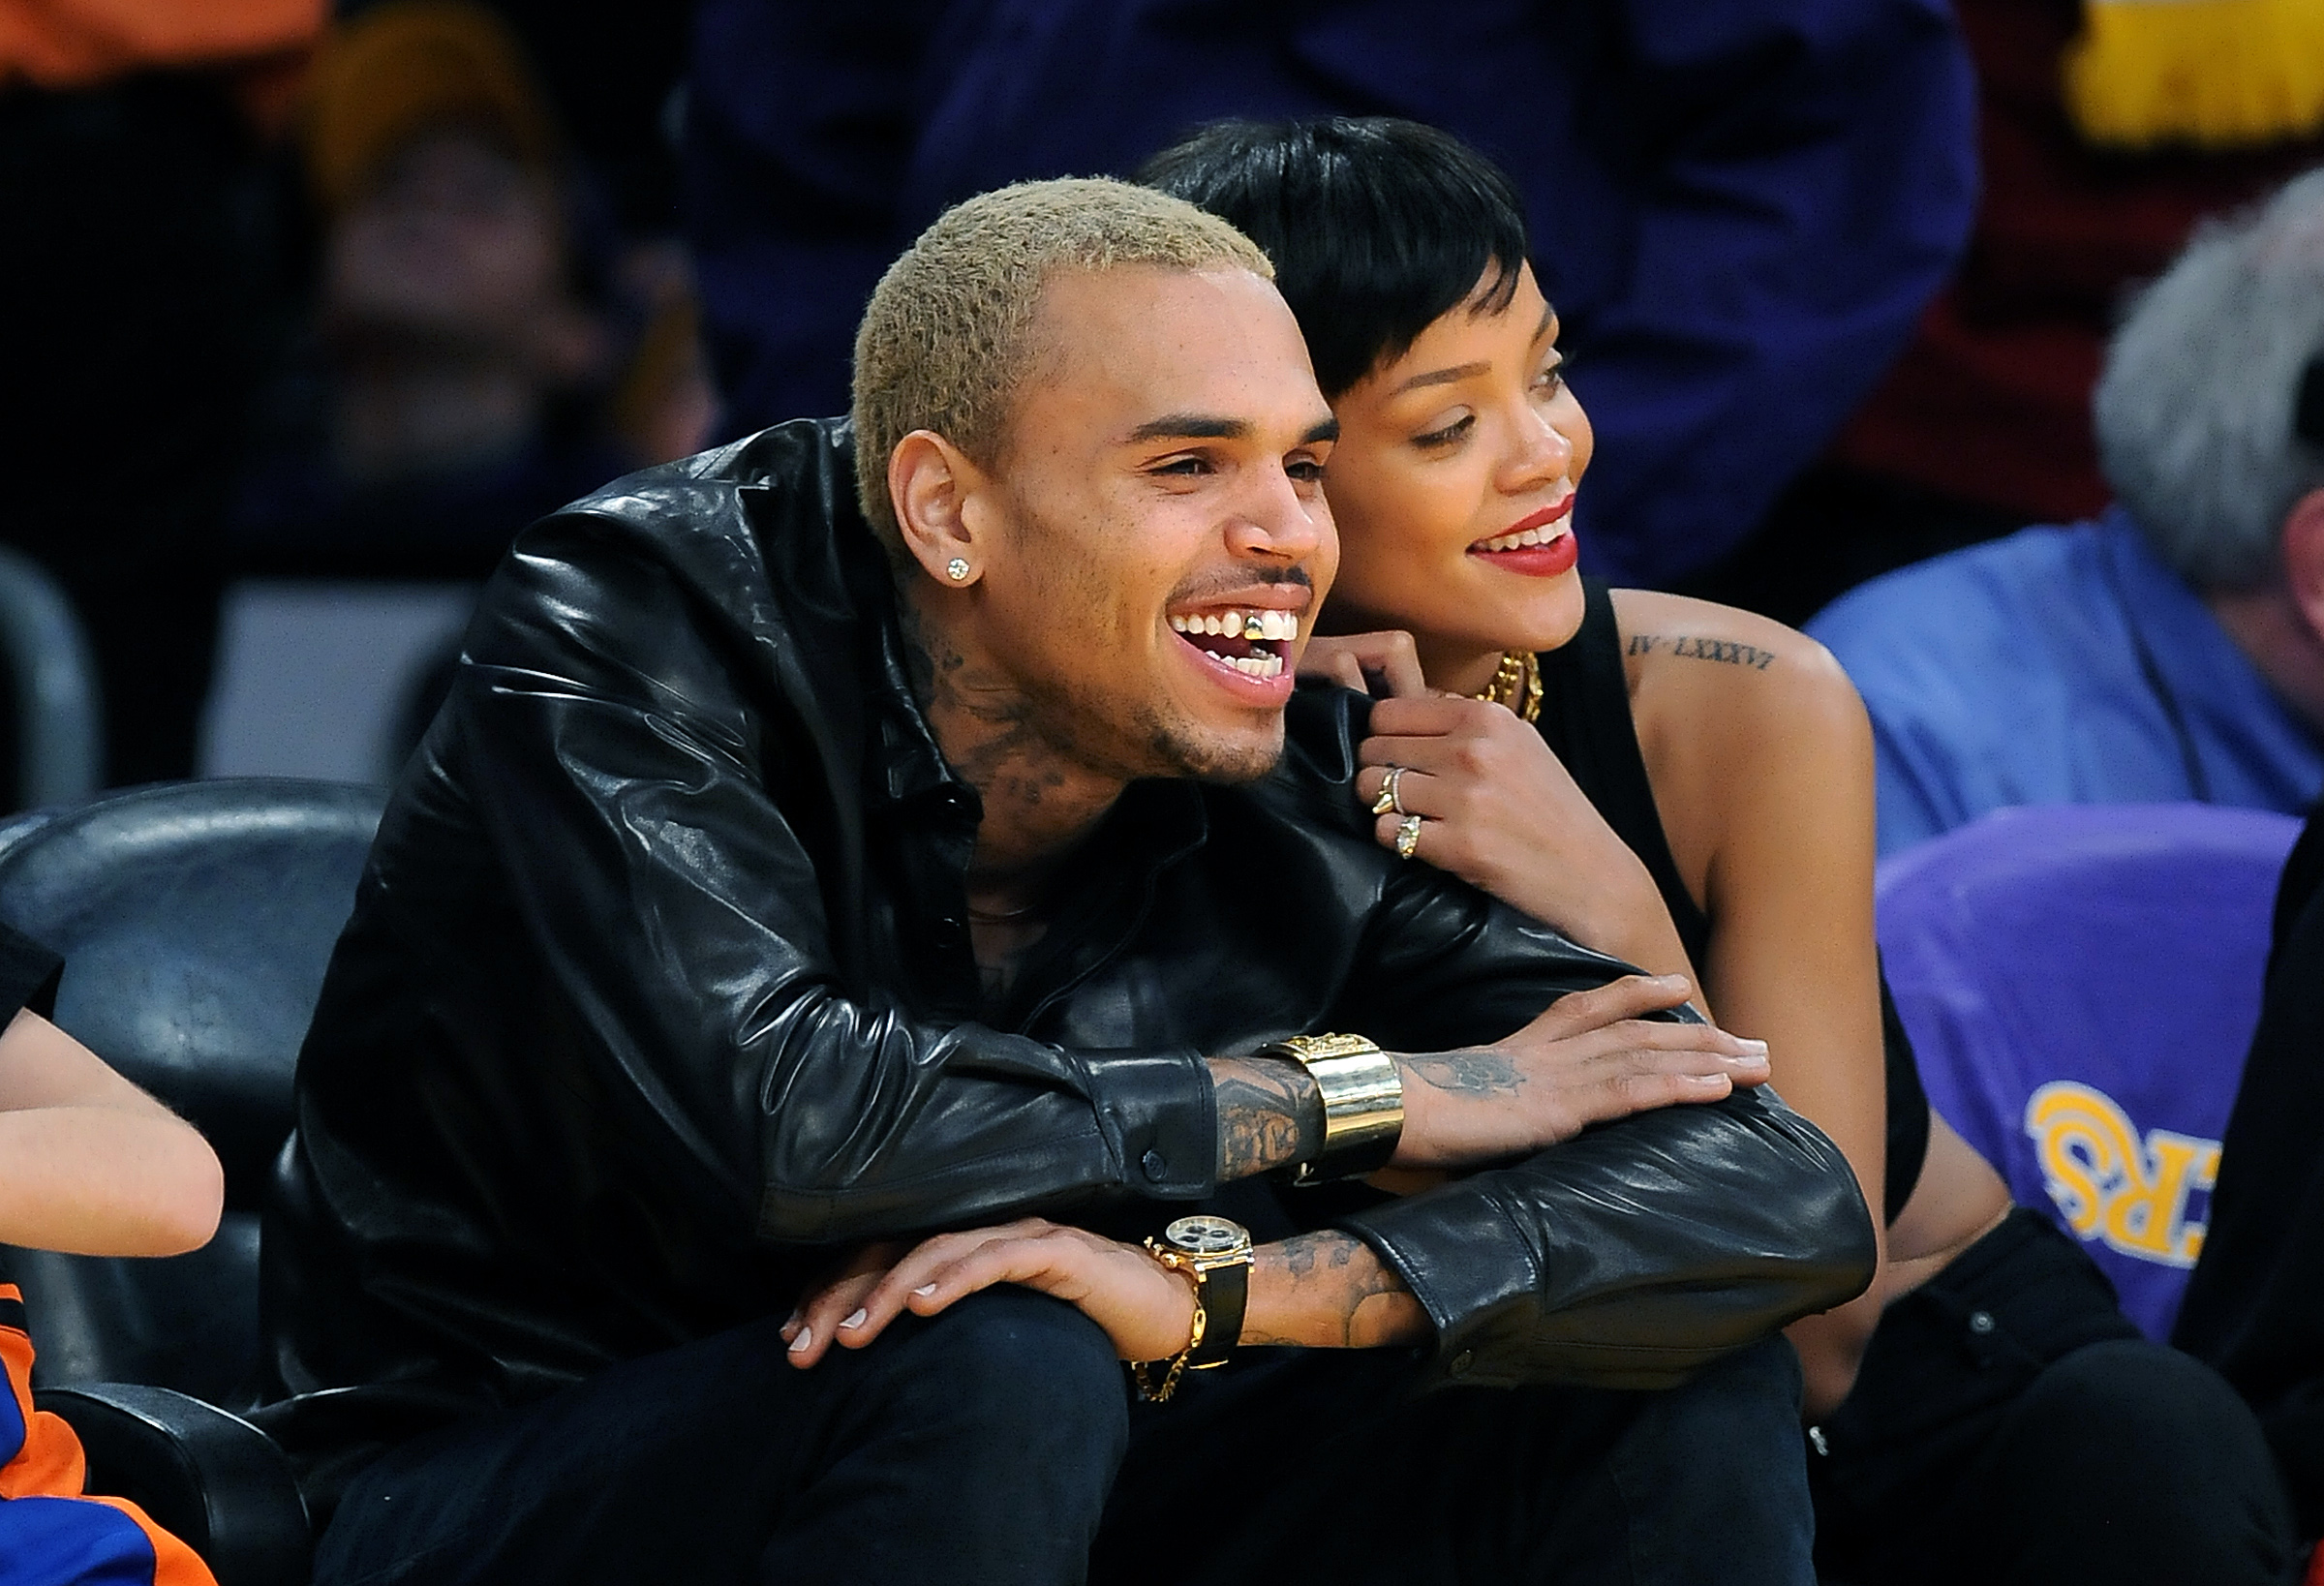 Chris Brown and Rihanna spend time together at the Lakers and Kincks game at the Staples Center Tue